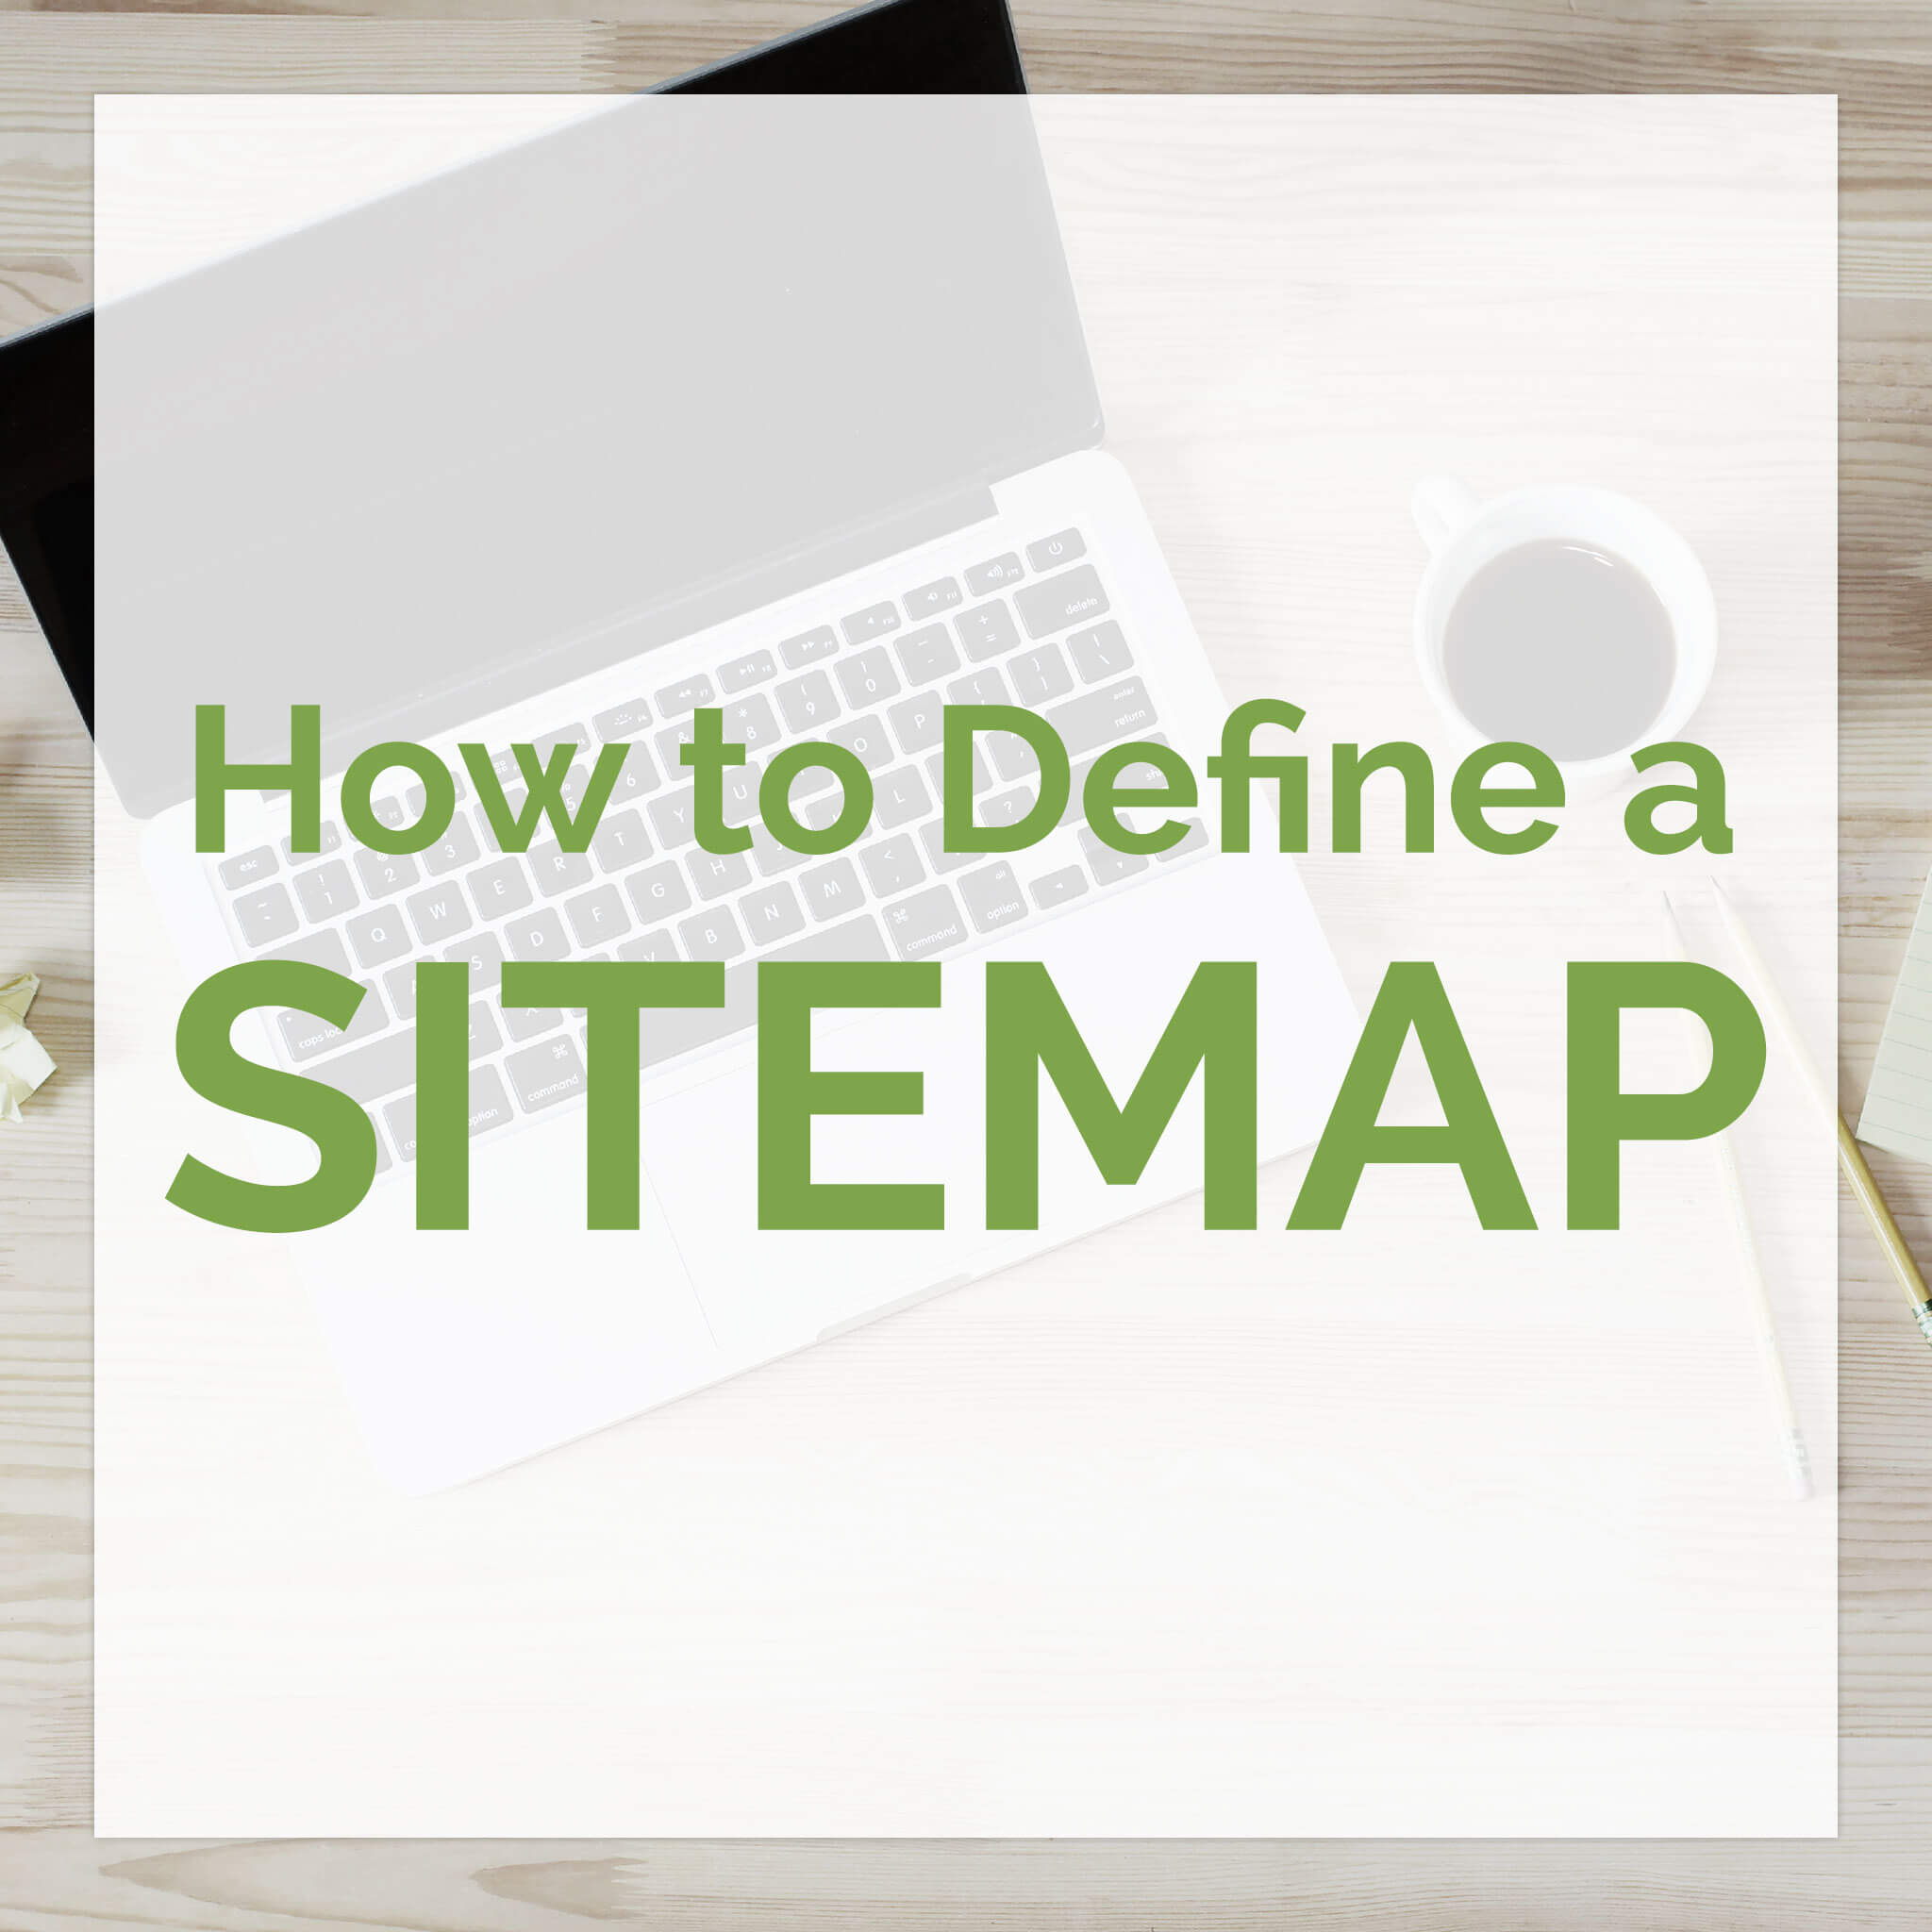 How to Define a Sitemap